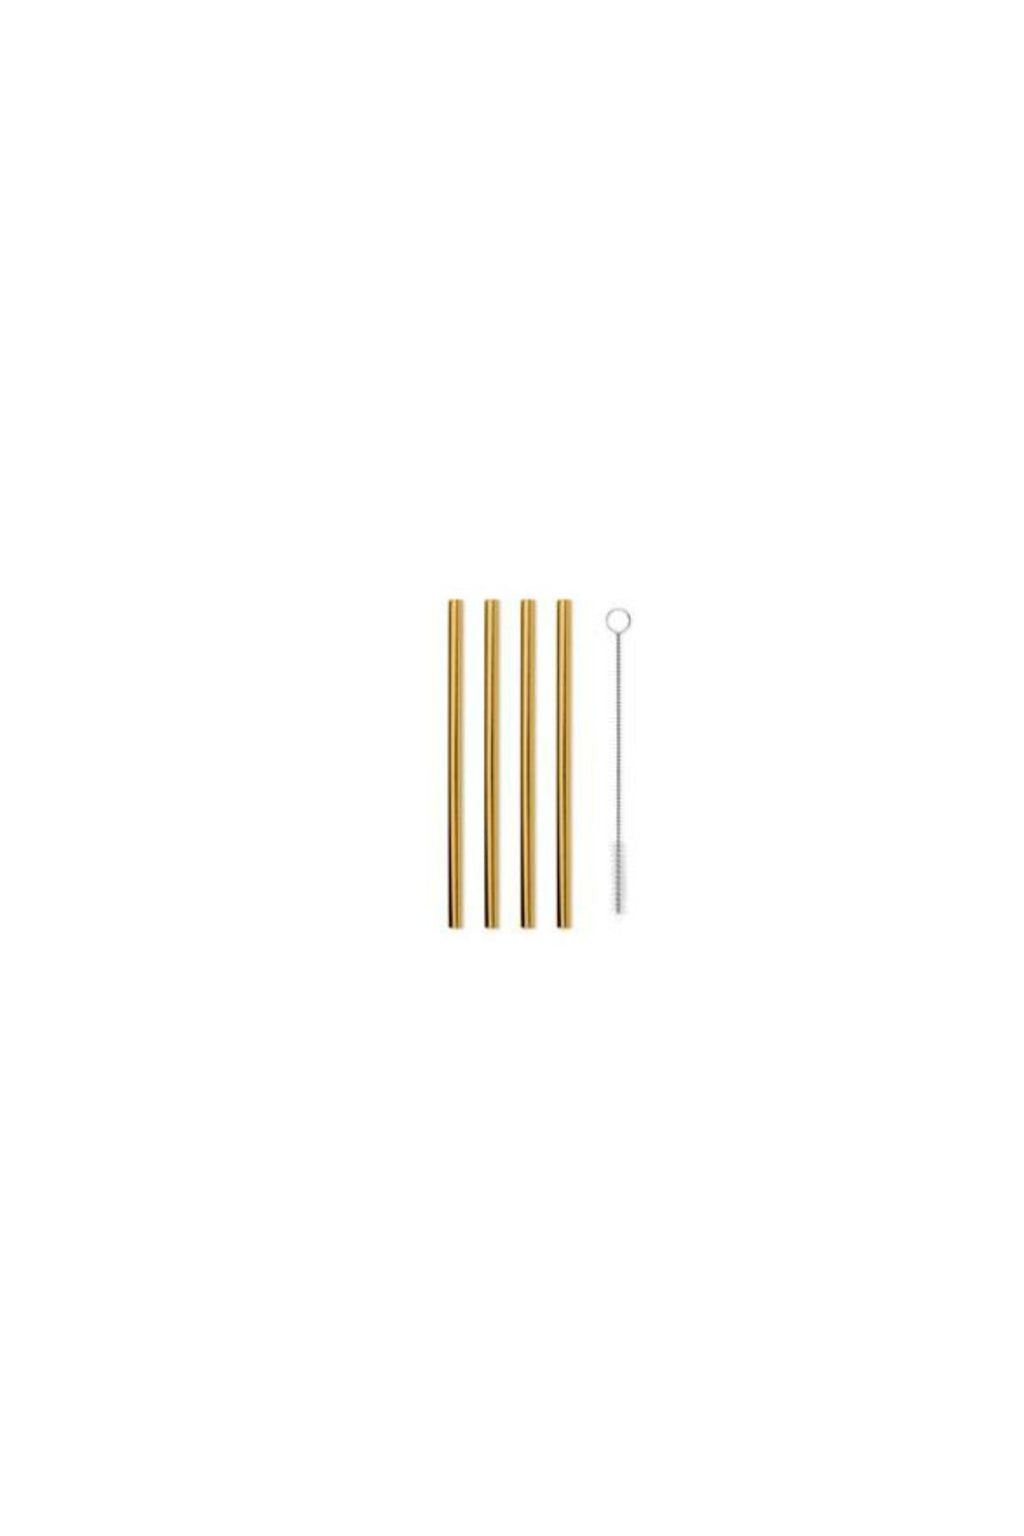 "W&P Porter 5"" Metal Straws - Set of 4 - Gold"